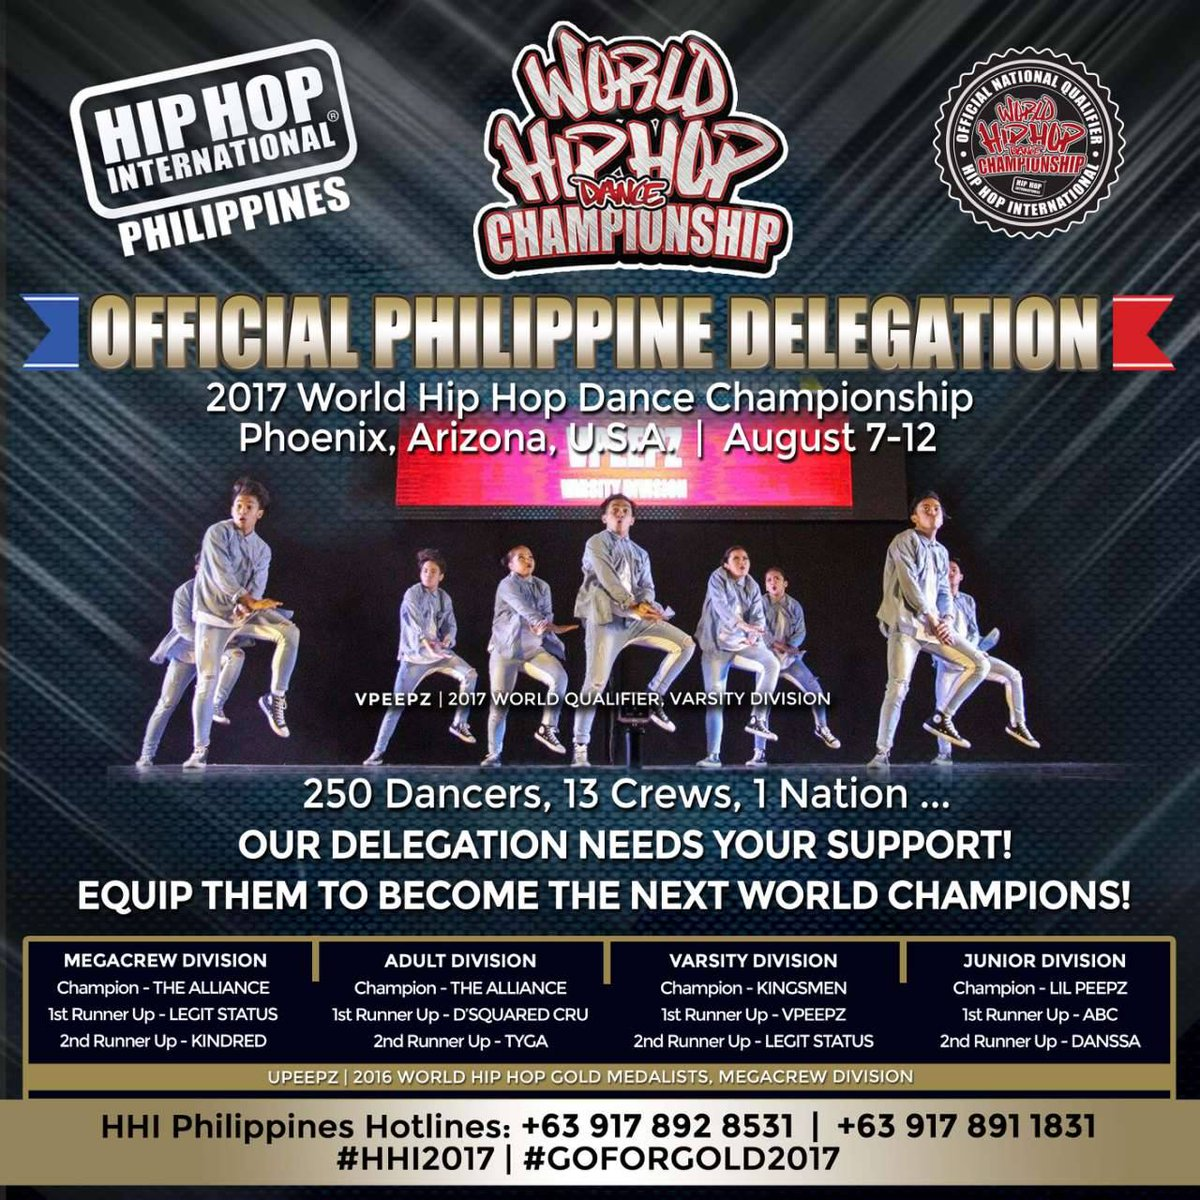 HipHop International On Twitter Hip Hop Philippines 2017 Varsity Crews Representing The HHI21017 HHIPH2017 HHI2017